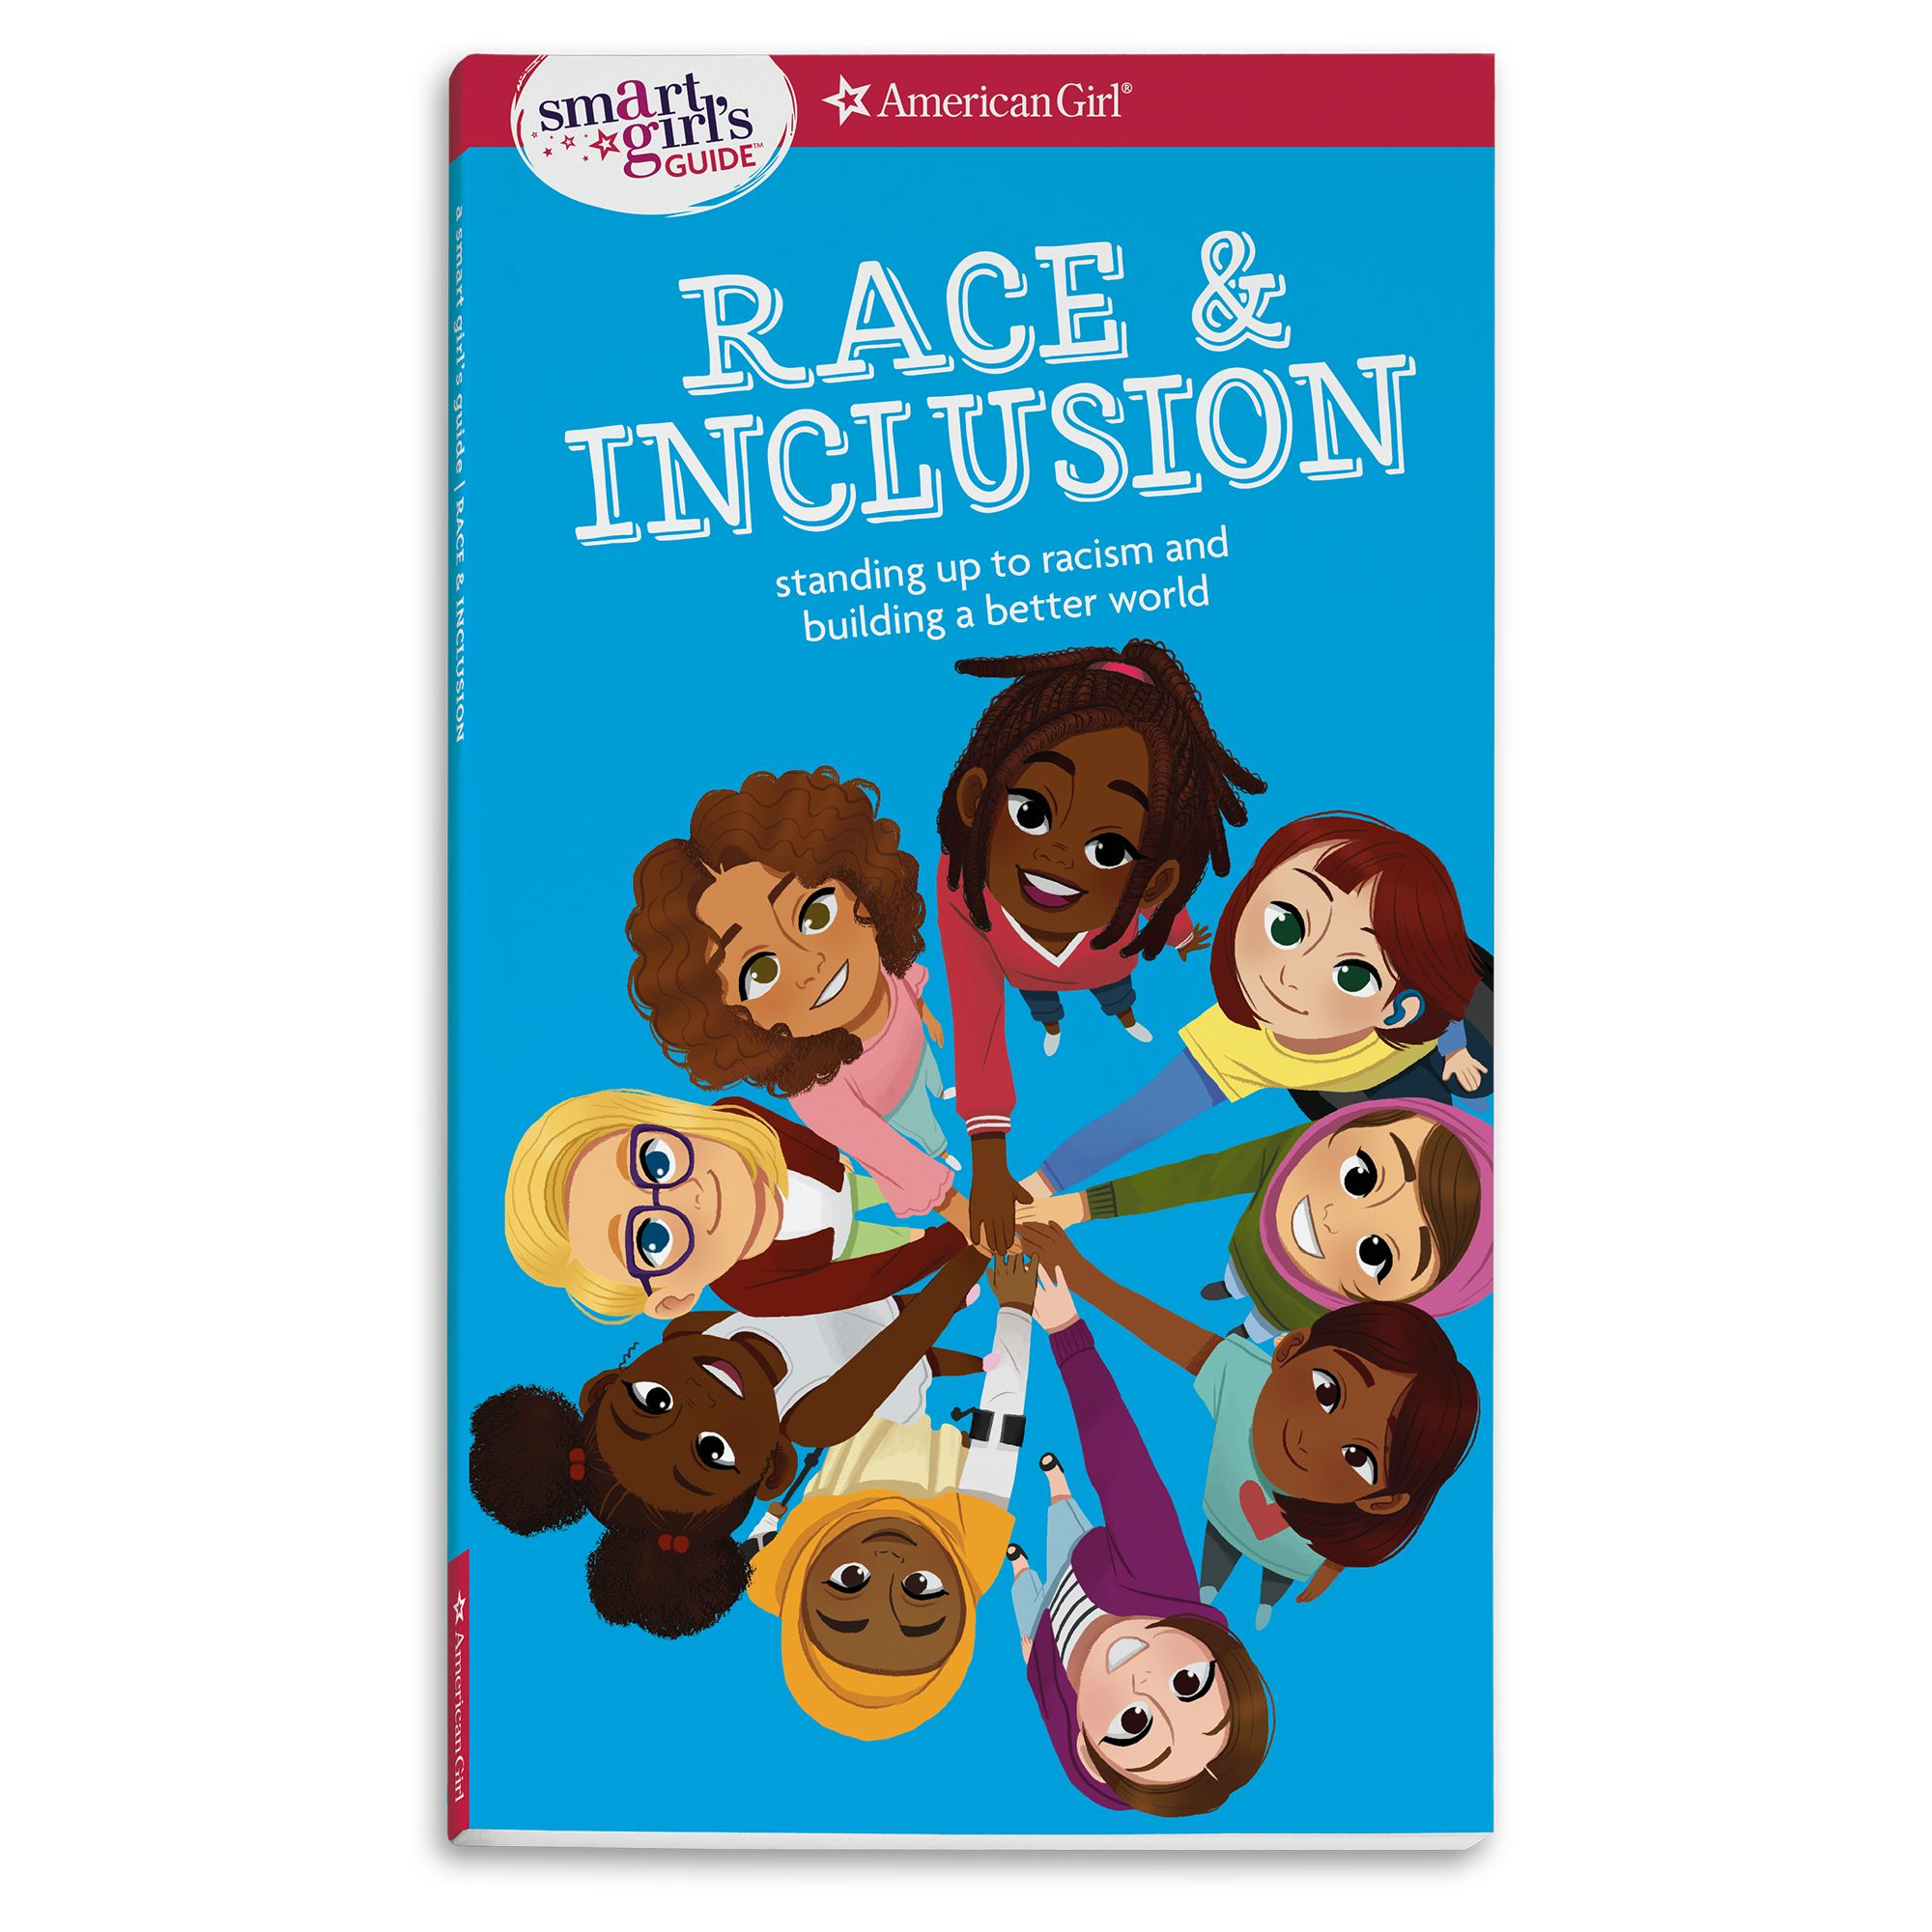 A Smart Girl's Guide: Race & Inclusion